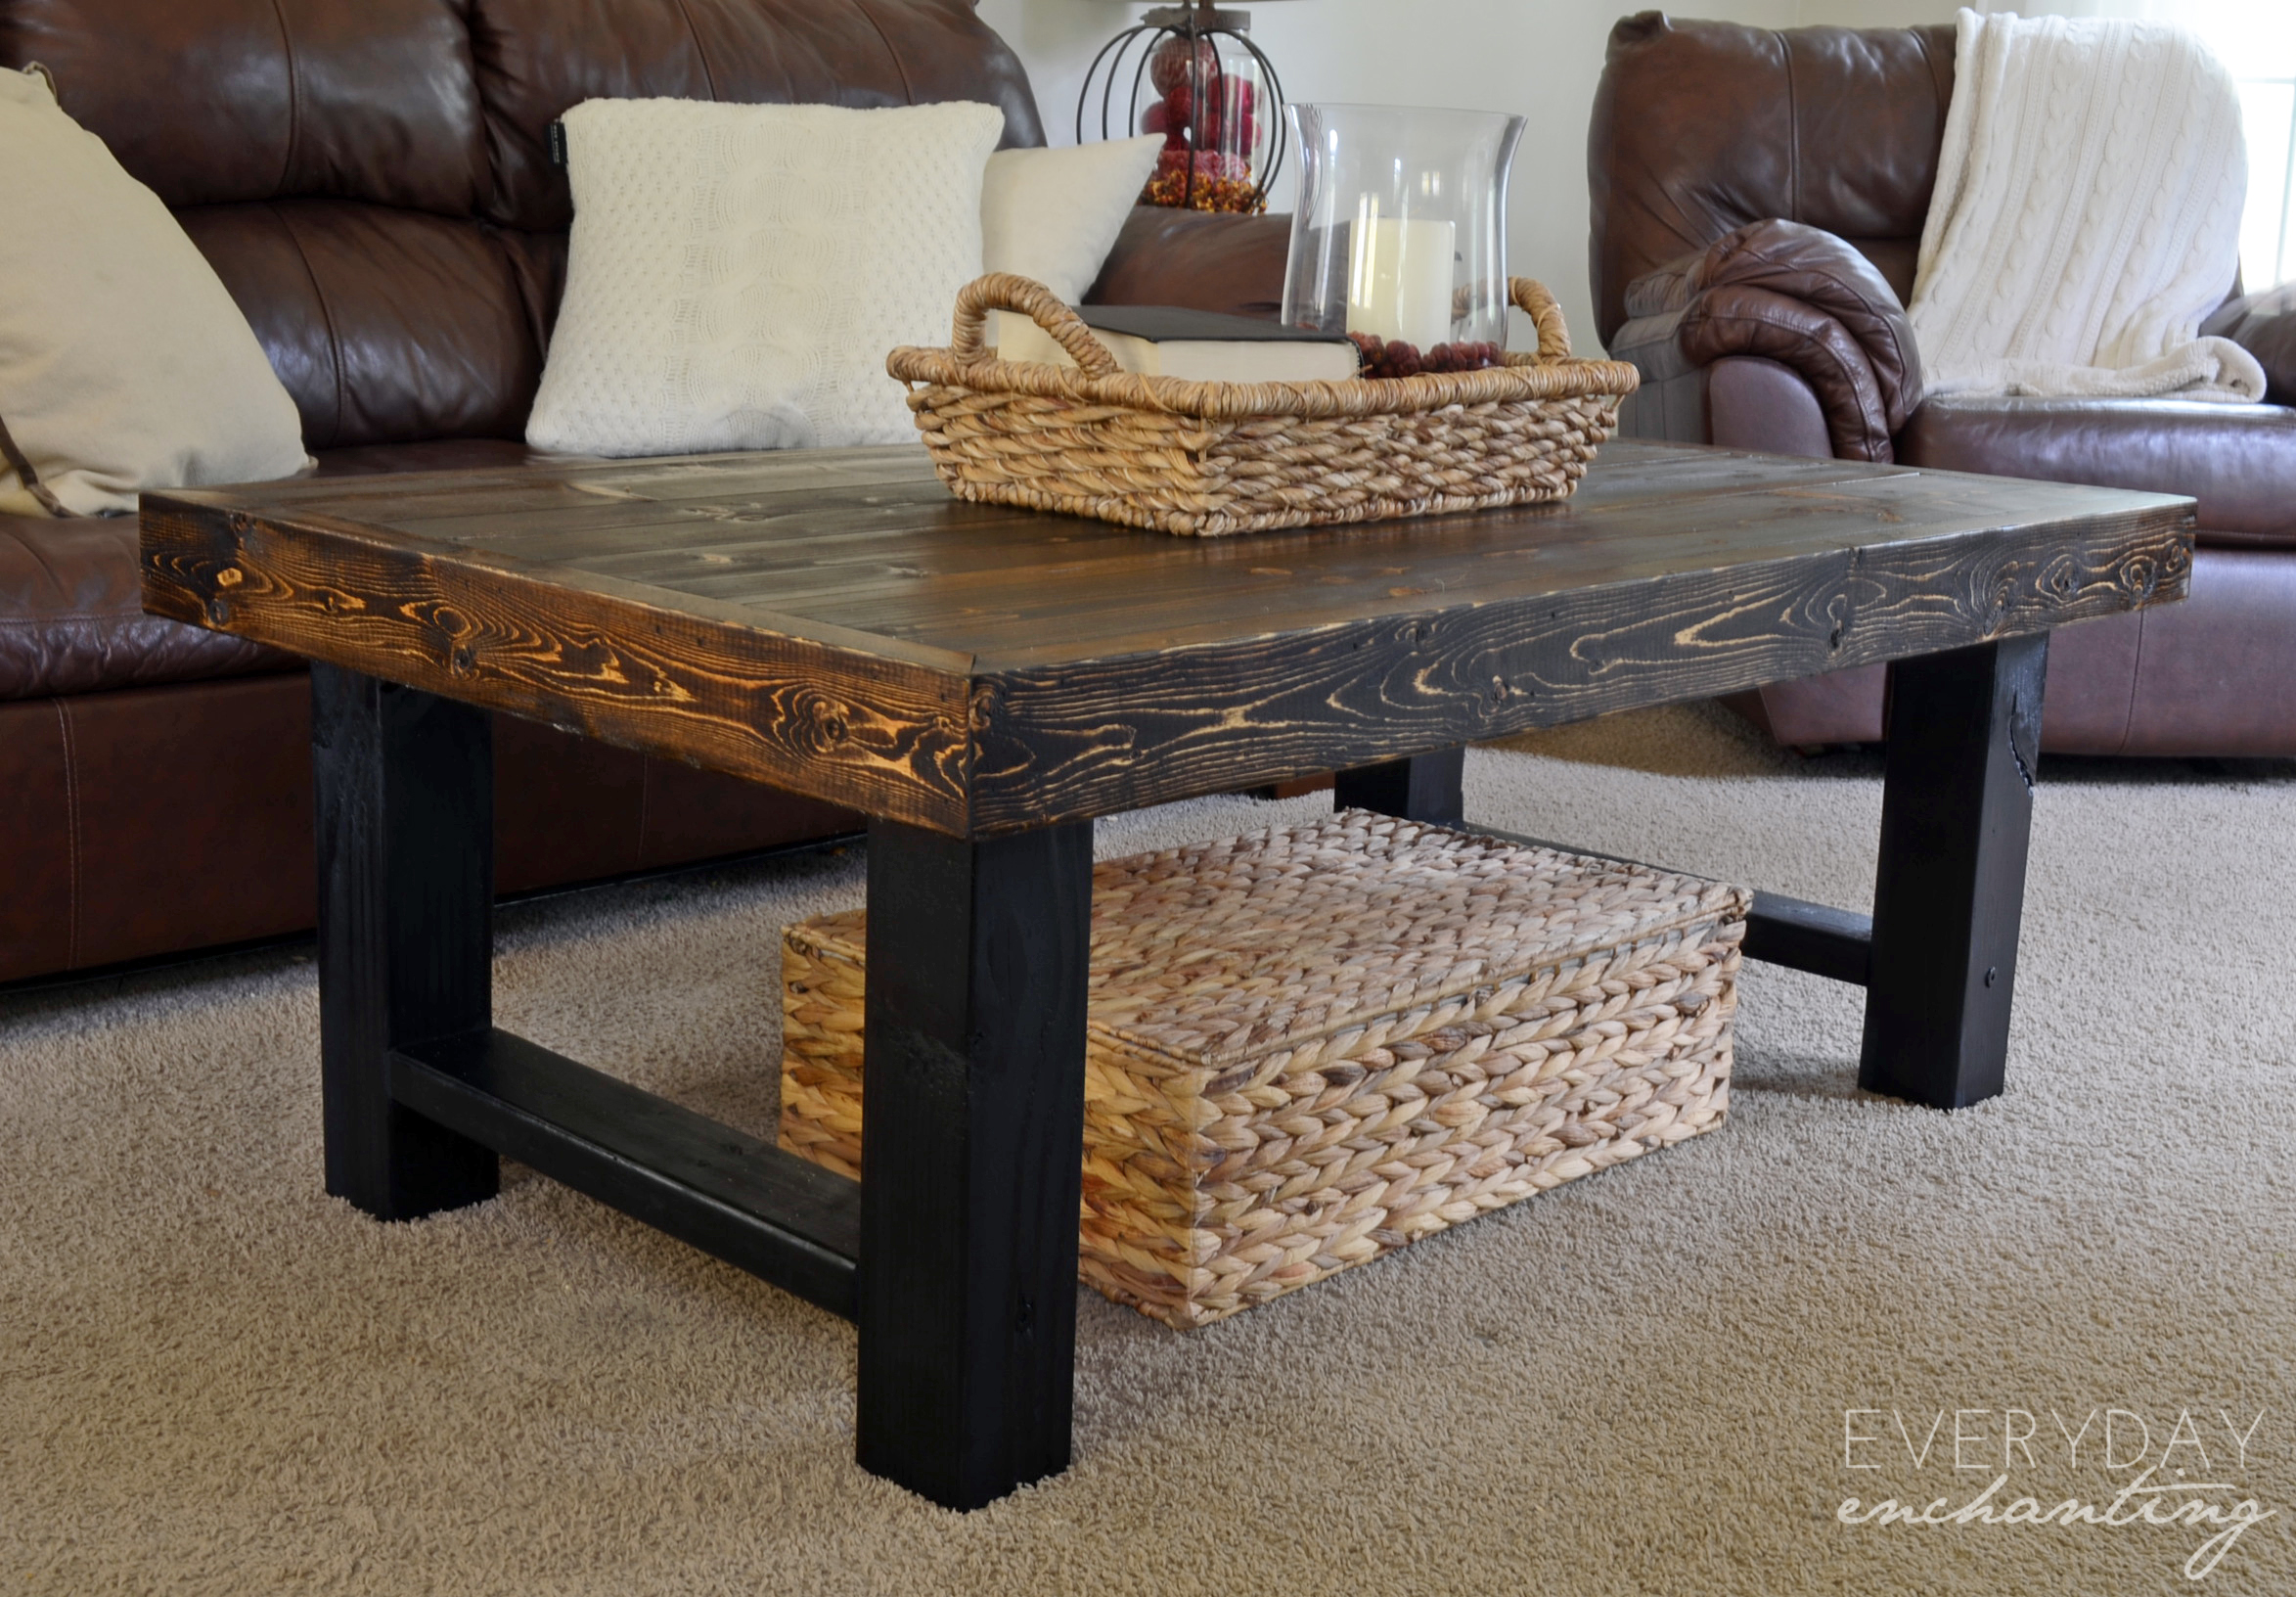 Diy Simple Coffee Table Learn How To Build A By Everyday